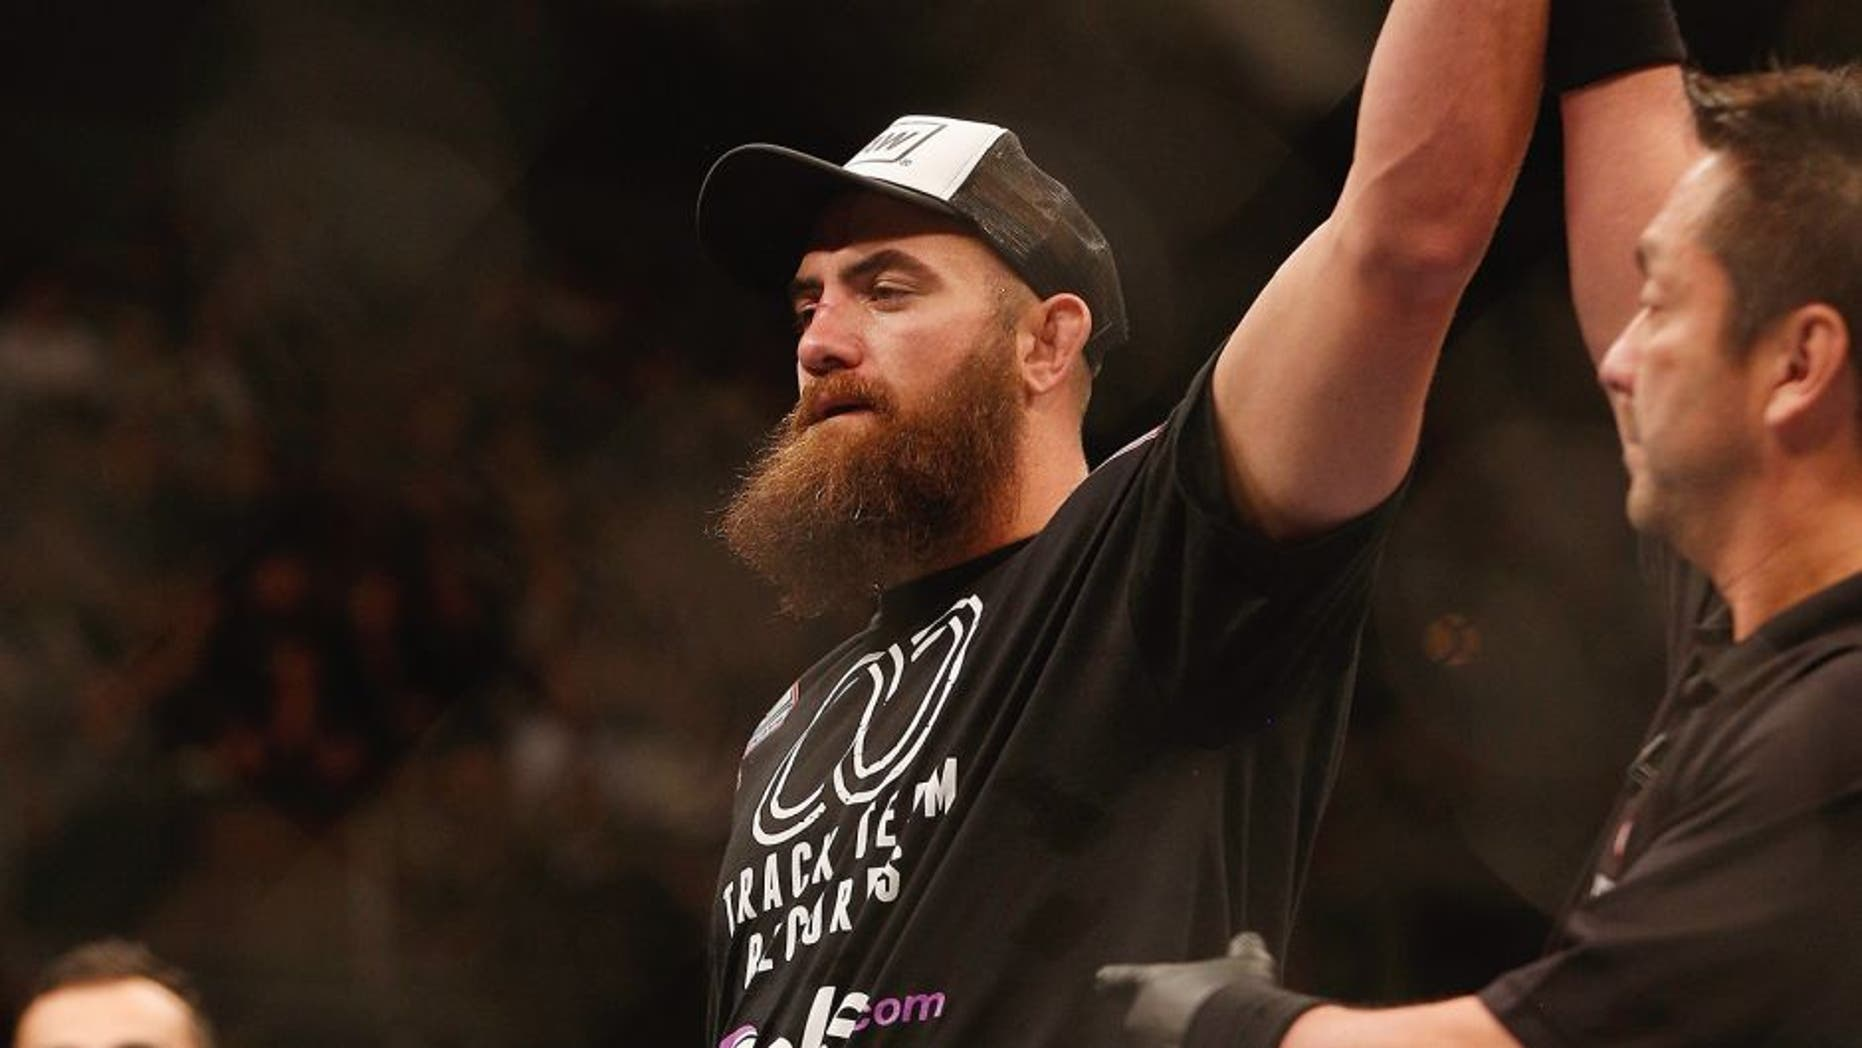 LAS VEGAS, NV - DECEMBER 06: Travis Browne is declared the winner over Brendan Schaub in their heavyweight bout during the UFC 181 event inside the Mandalay Bay Events Center on December 6, 2014 in Las Vegas, Nevada. (Photo by Josh Hedges/Zuffa LLC/Zuffa LLC via Getty Images)